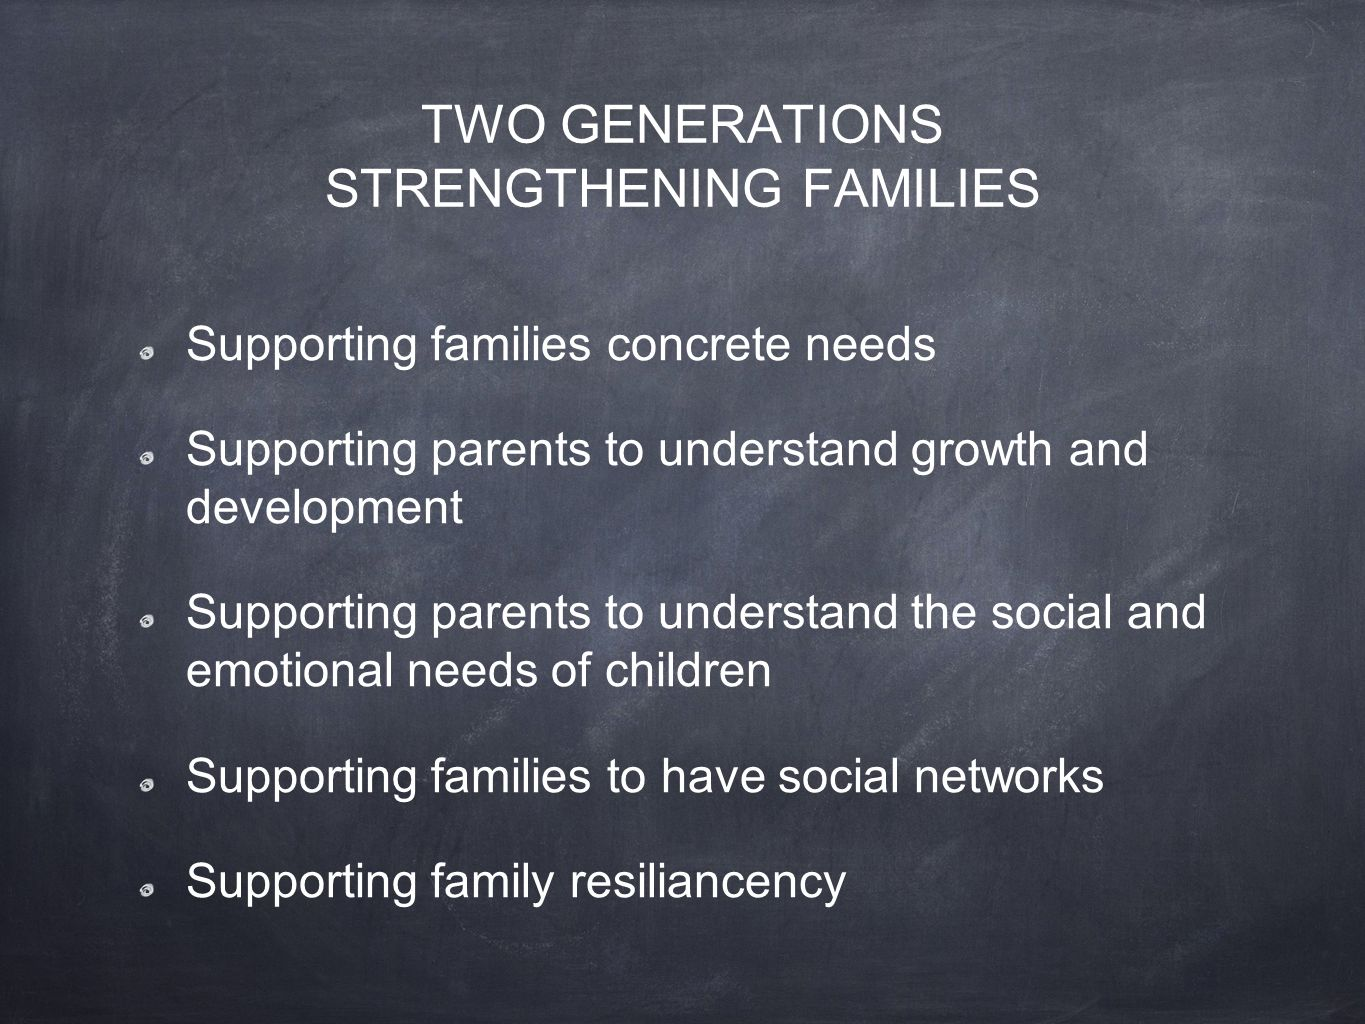 TWO GENERATIONS STRENGTHENING FAMILIES Supporting families concrete needs Supporting parents to understand growth and development Supporting parents to understand the social and emotional needs of children Supporting families to have social networks Supporting family resiliancency